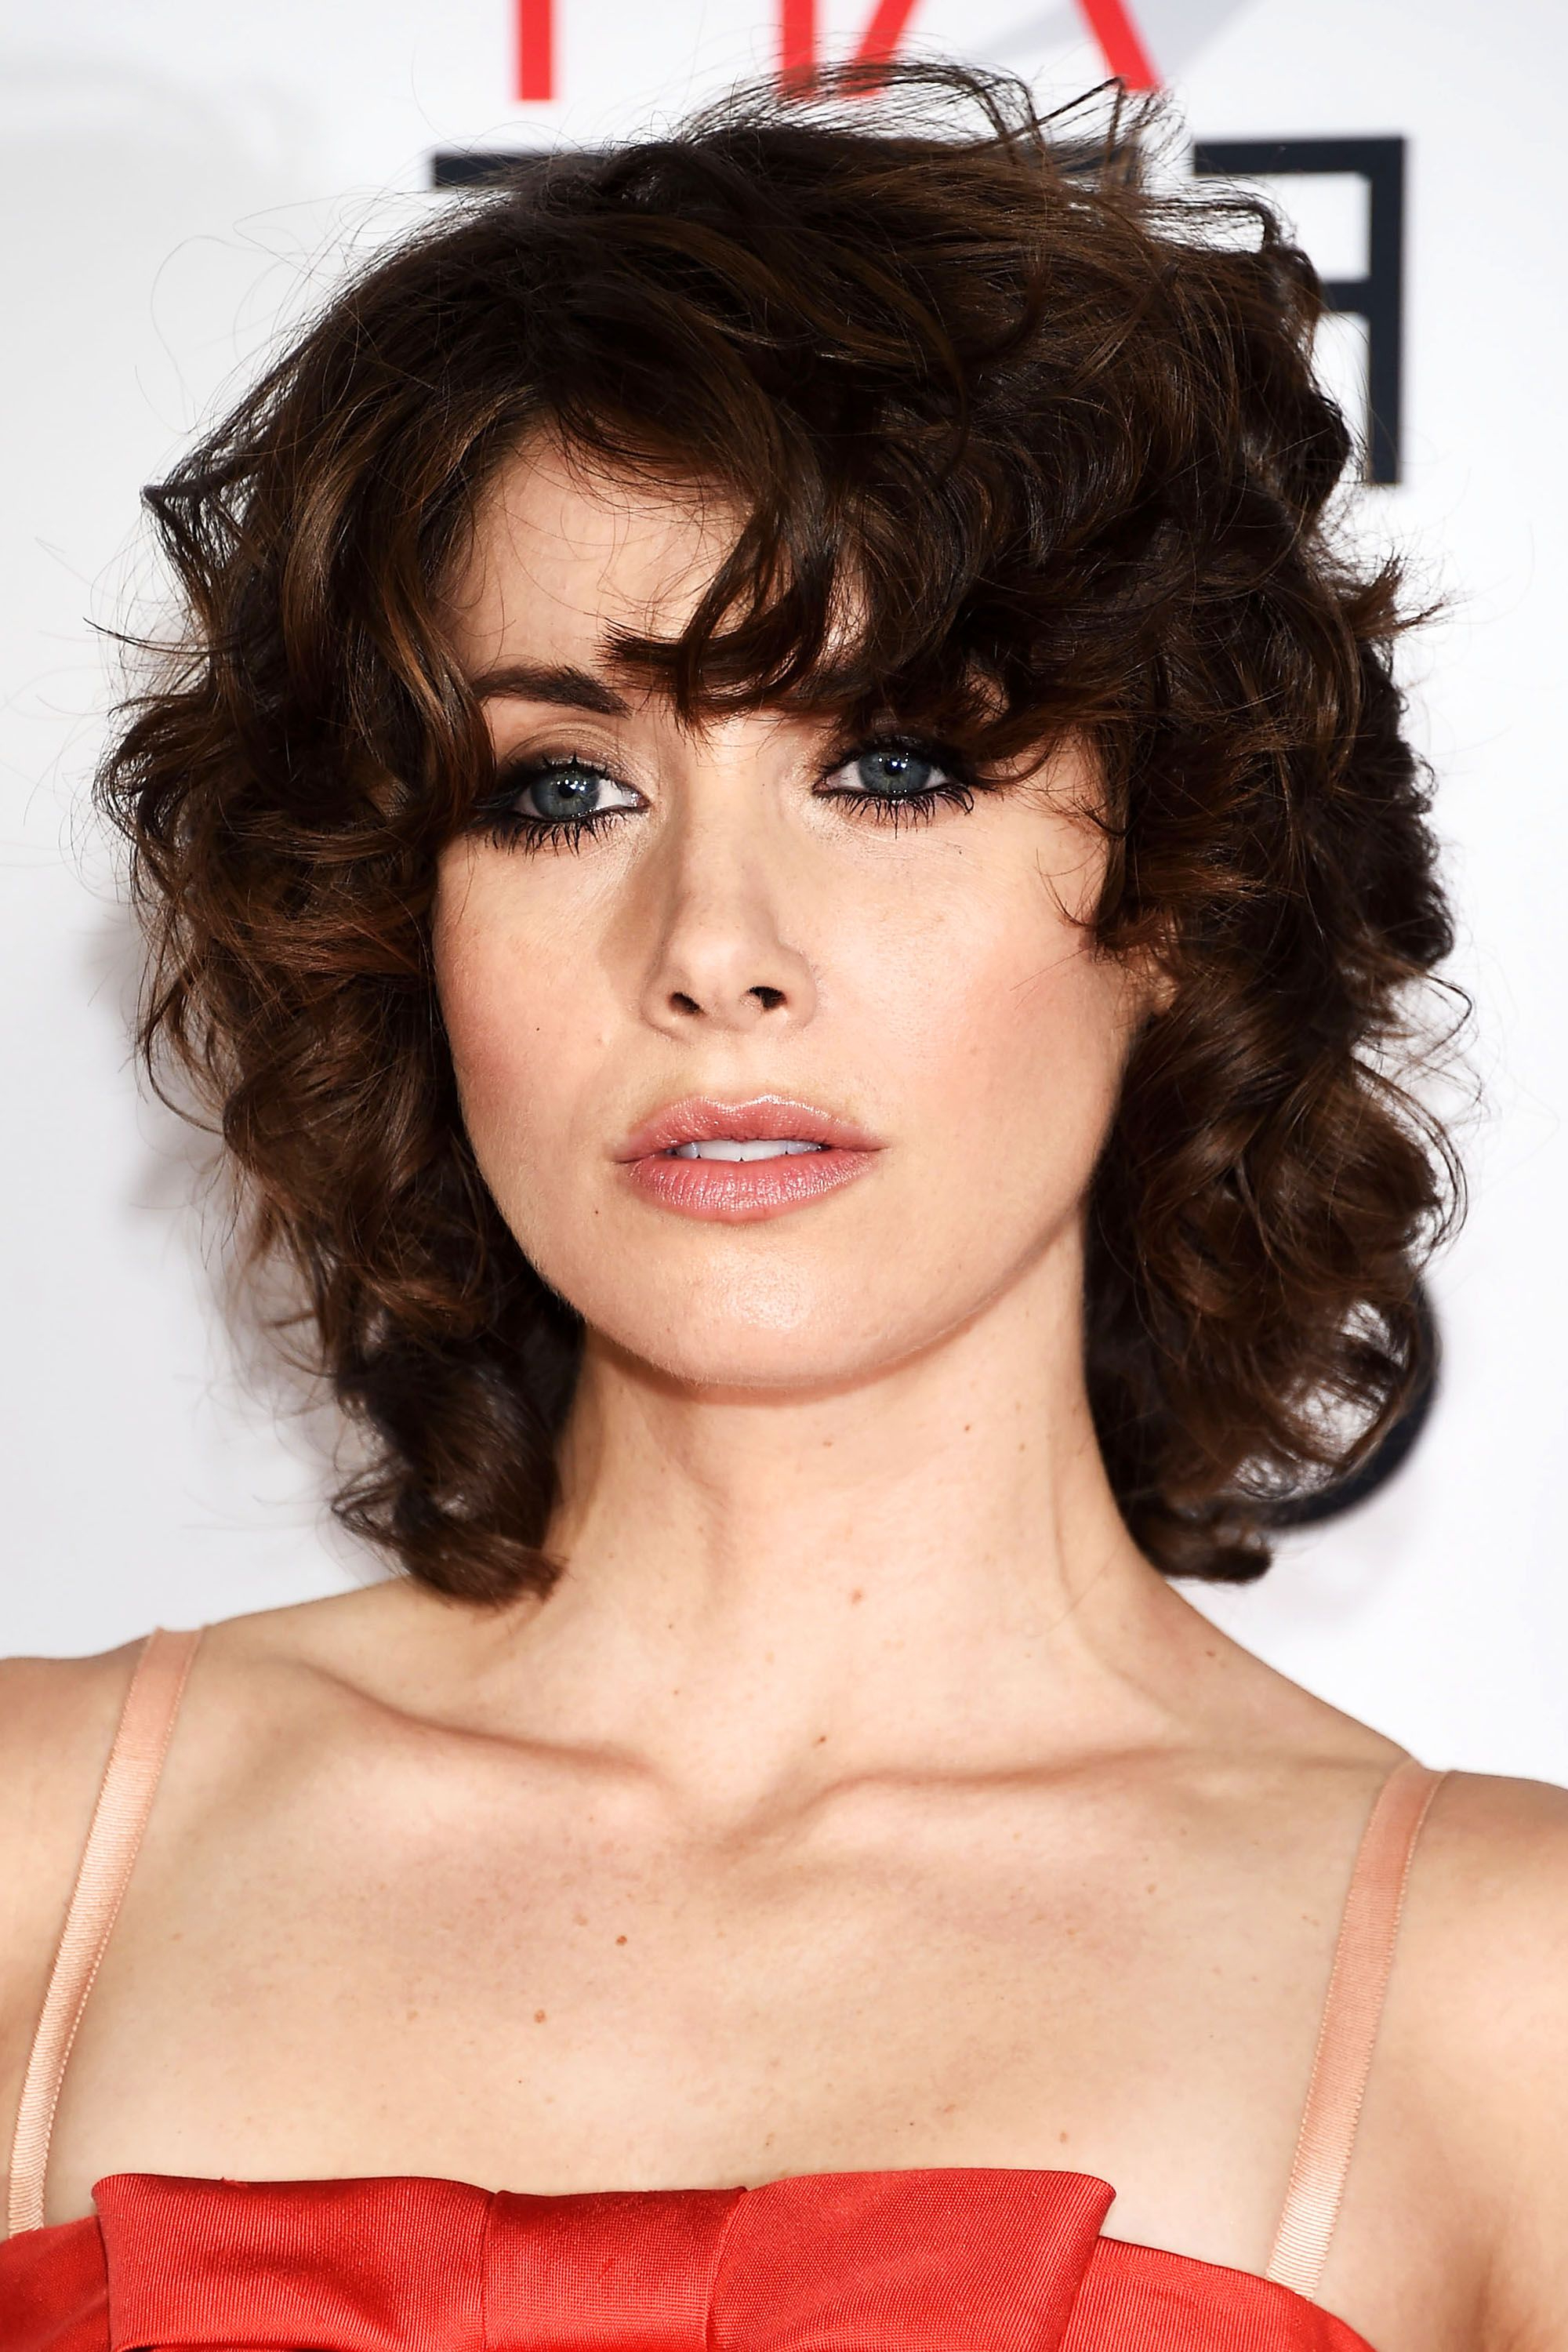 112 Hairstyles With Bangs You'll Want To Copy – Celebrity Haircuts For Gorgeous Feathered Look Hairstyles (View 2 of 20)